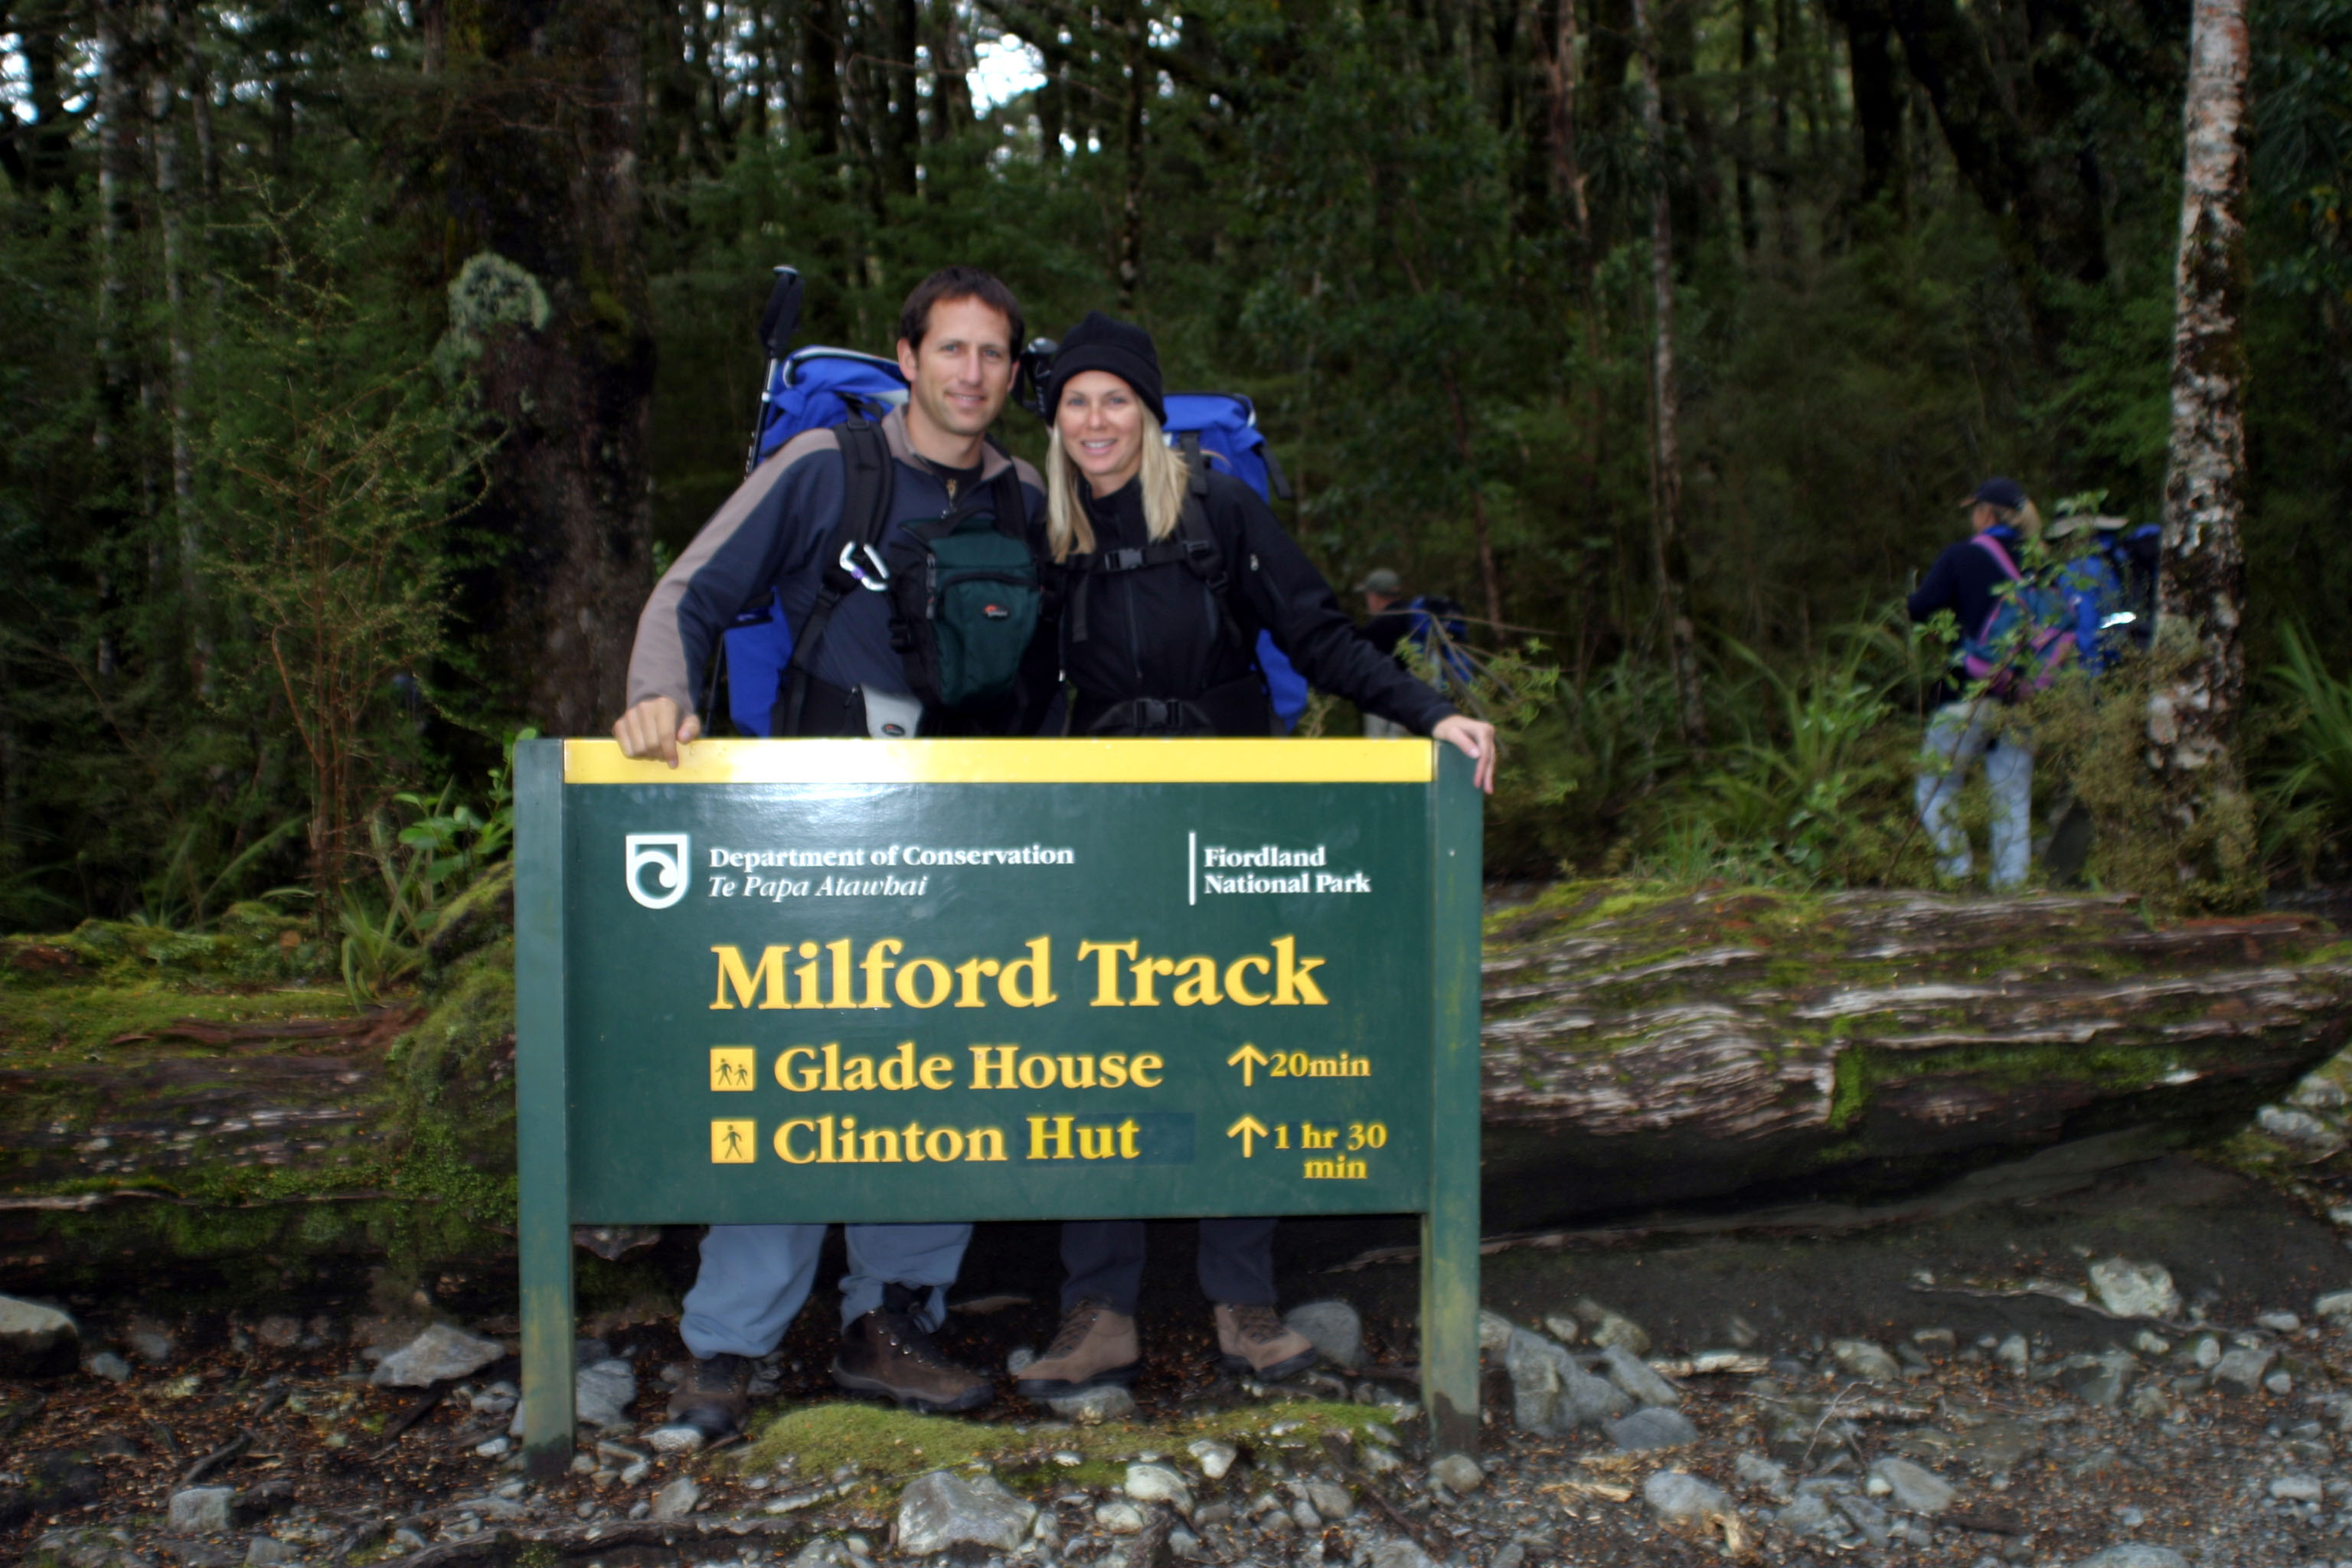 Milford Track Photos